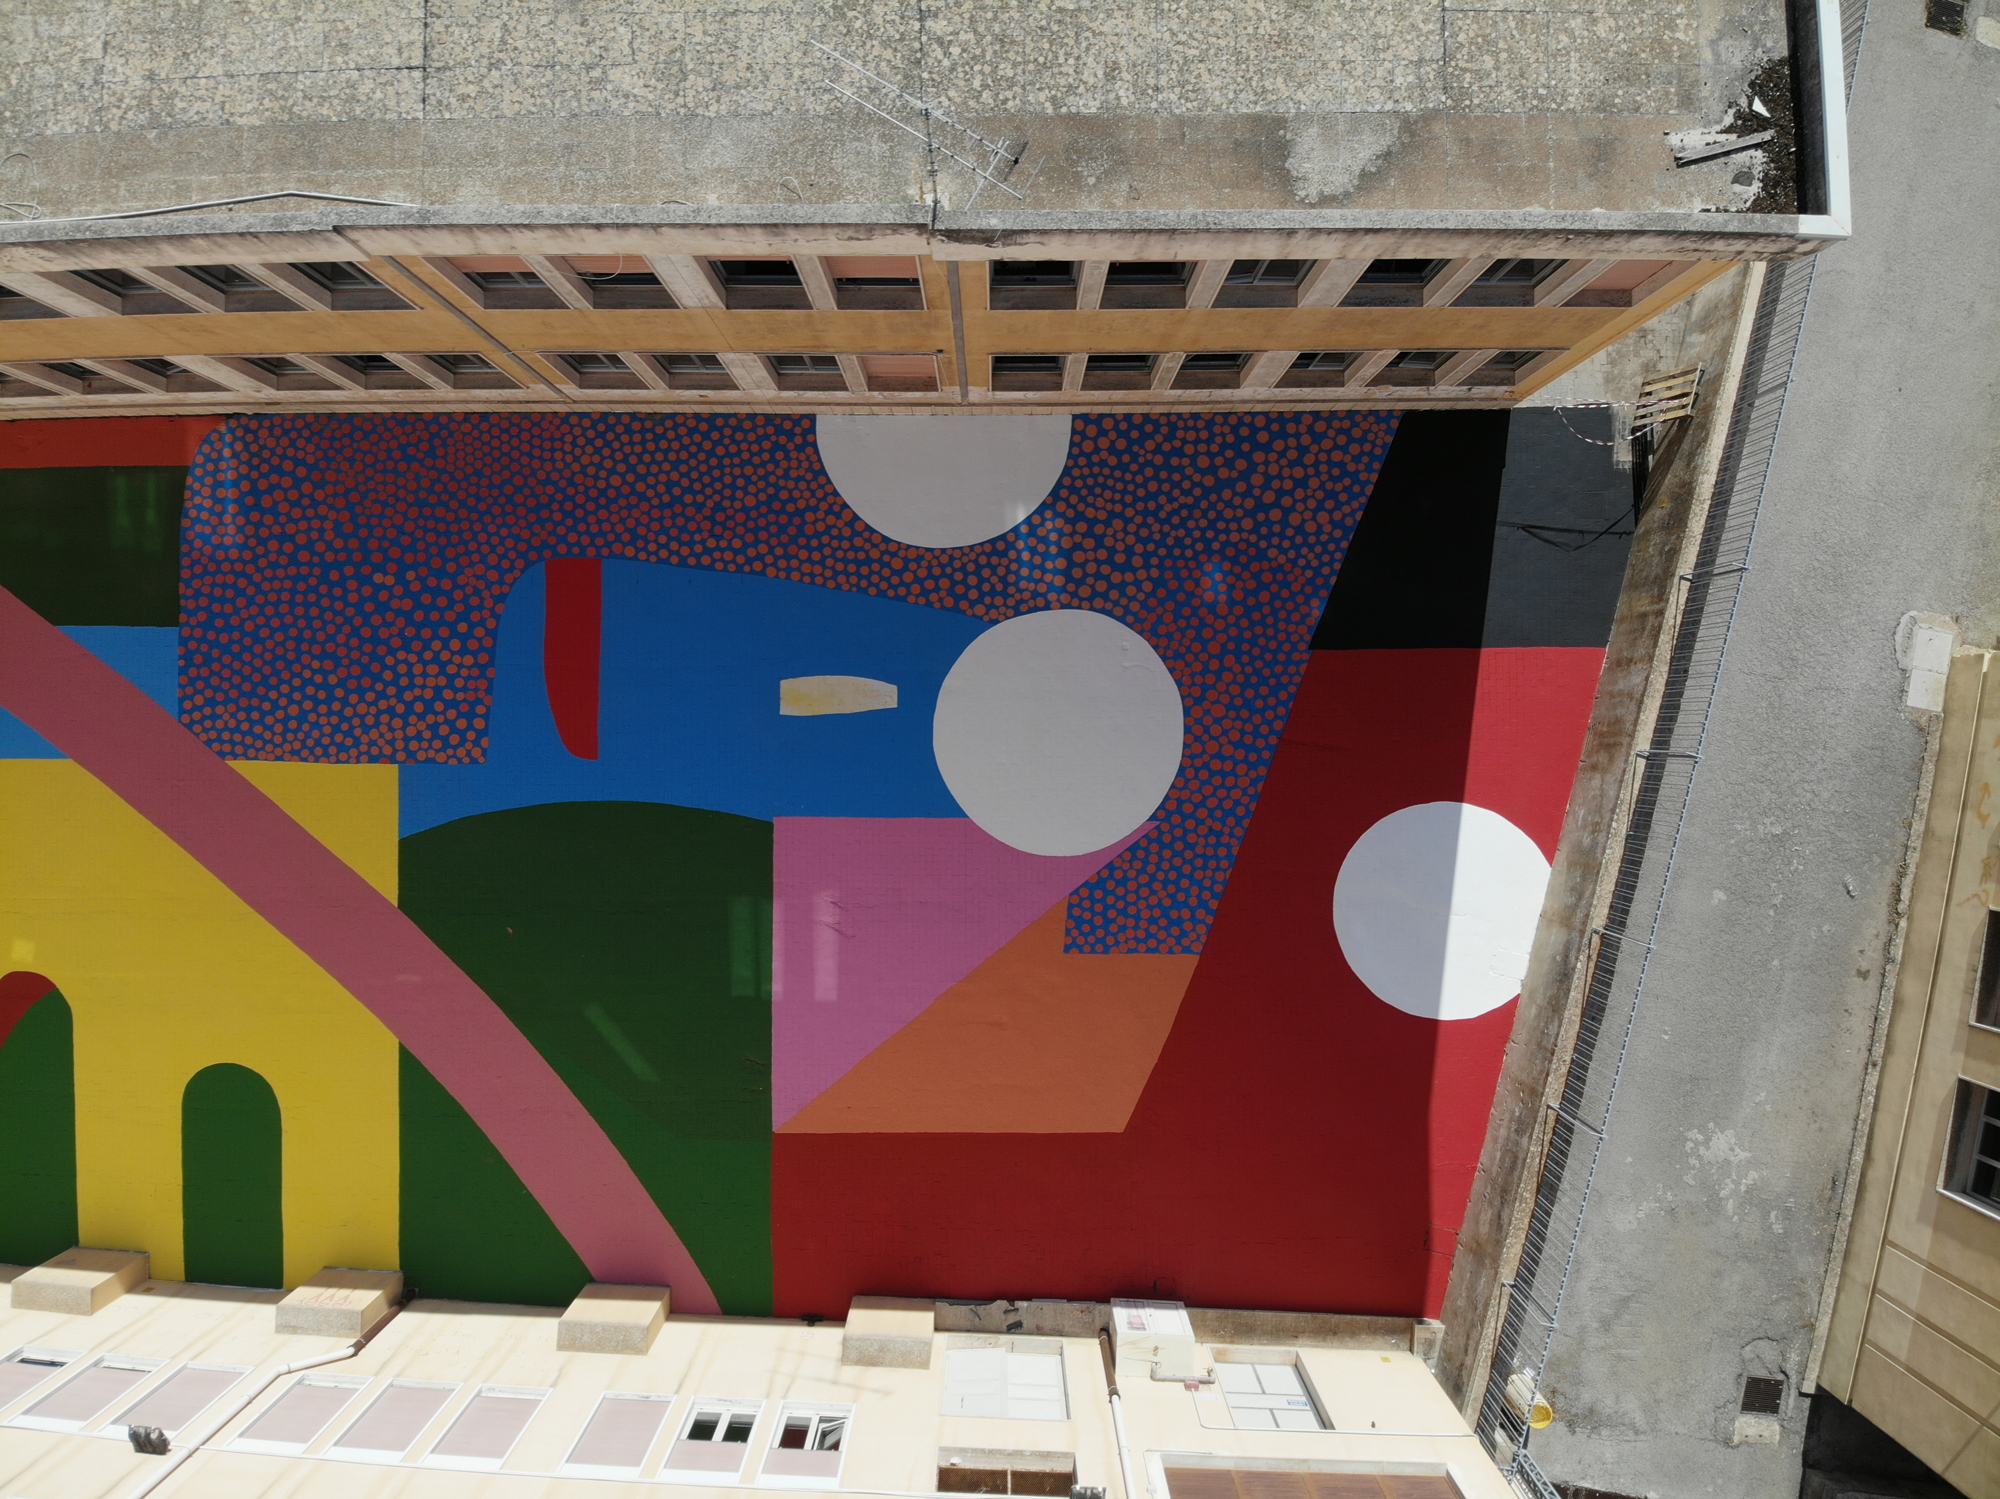 A Mural of Brightly Colored Shapes and Clusters of Spots Gives a Striking Update to a School Courtyard in Sicily